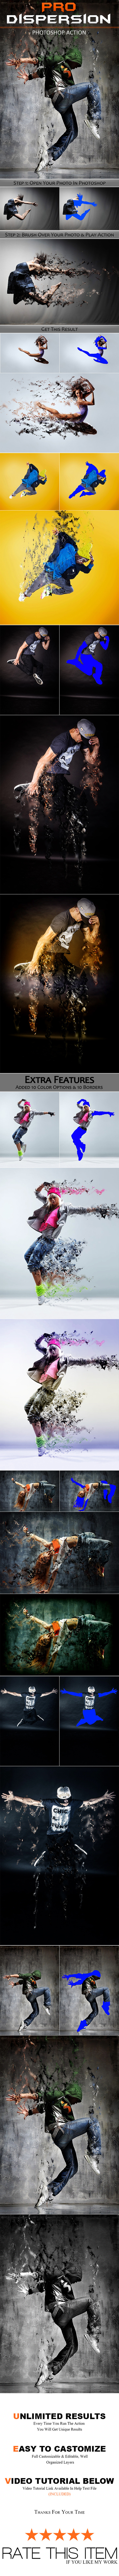 Pro Dispersion - PS Action - Photo Effects Actions